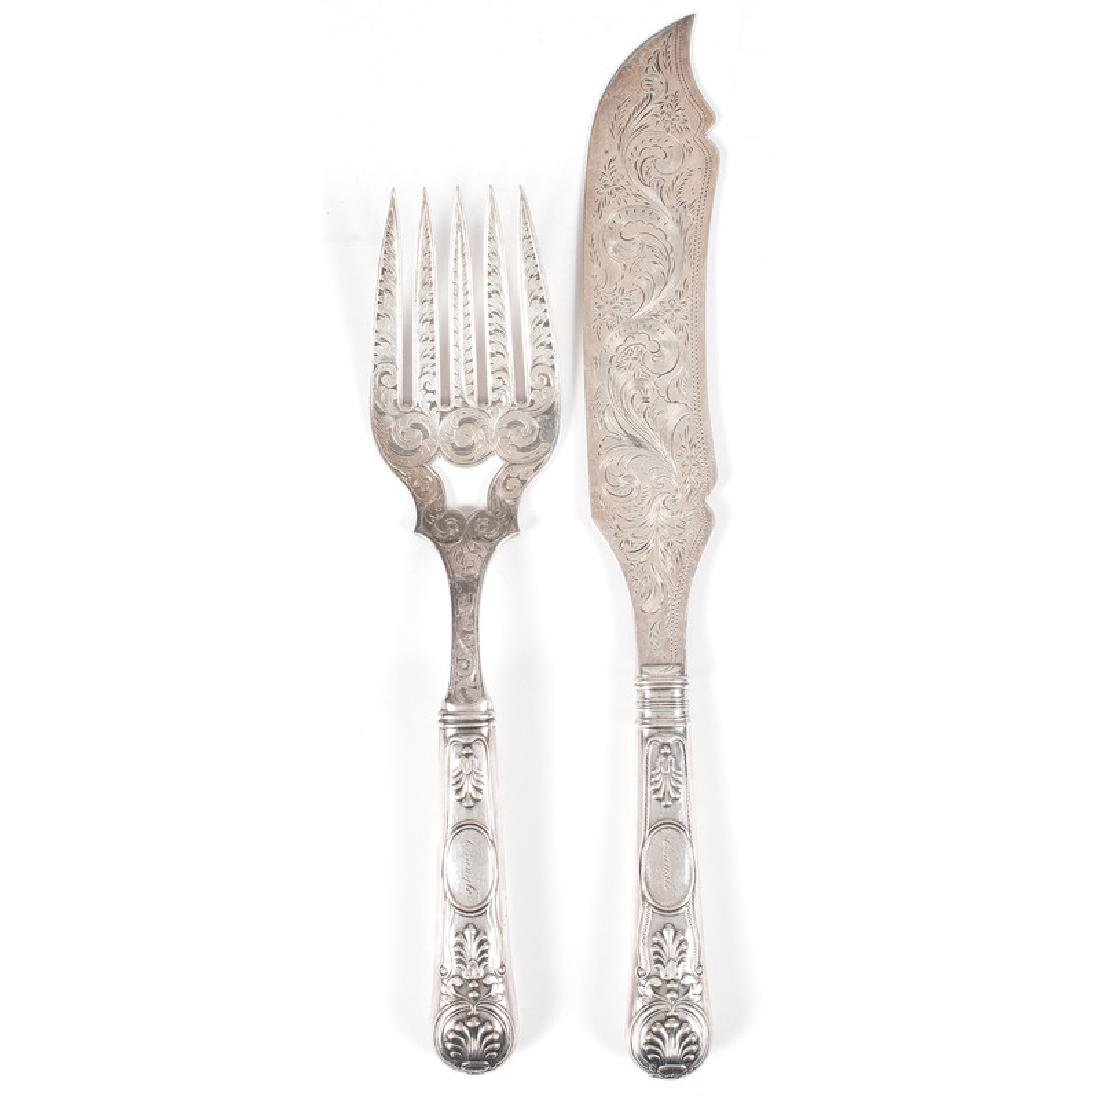 Bailey & Co. Silver Fish Serving Set